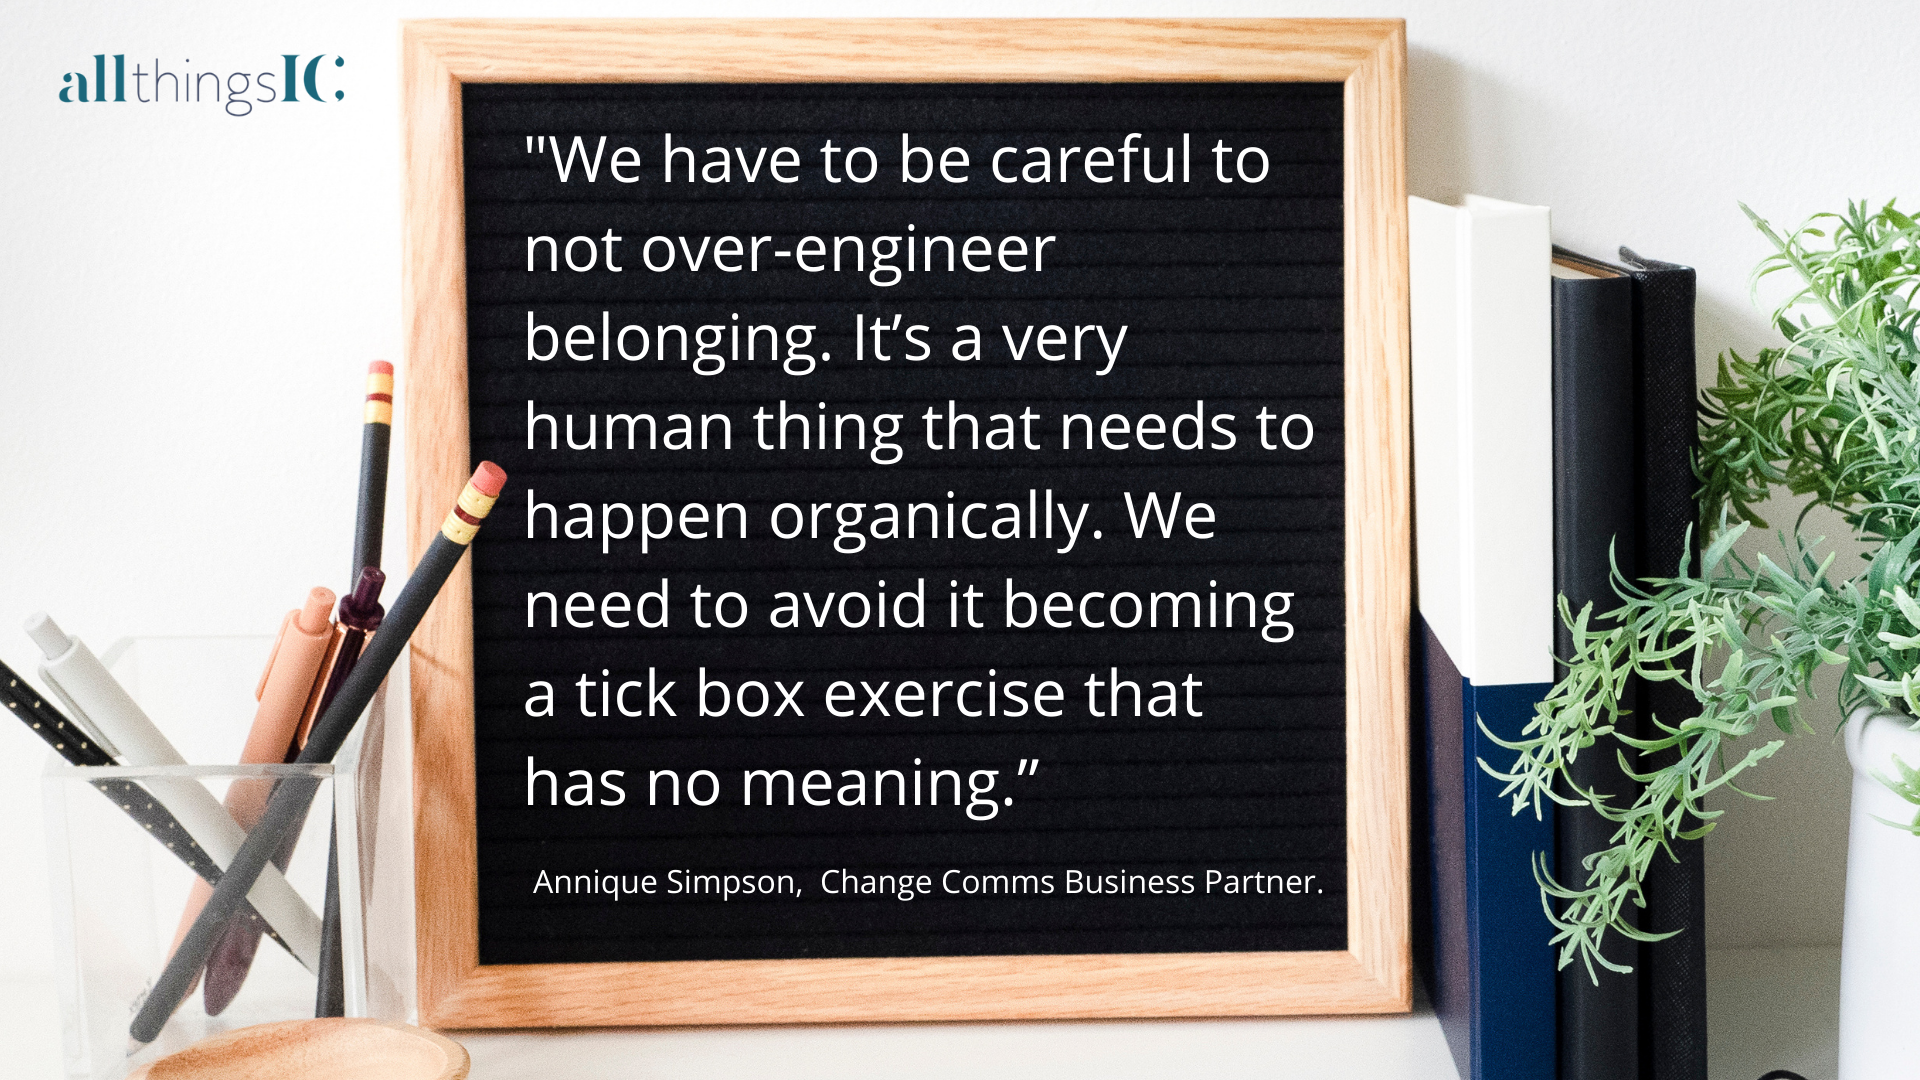 """Annique Simpson quote """"We have to be careful to not over-engineer belonging. It's a very human thing that needs to happen organically. We need to avoid it becoming a tick box exercise that has no meaning."""""""